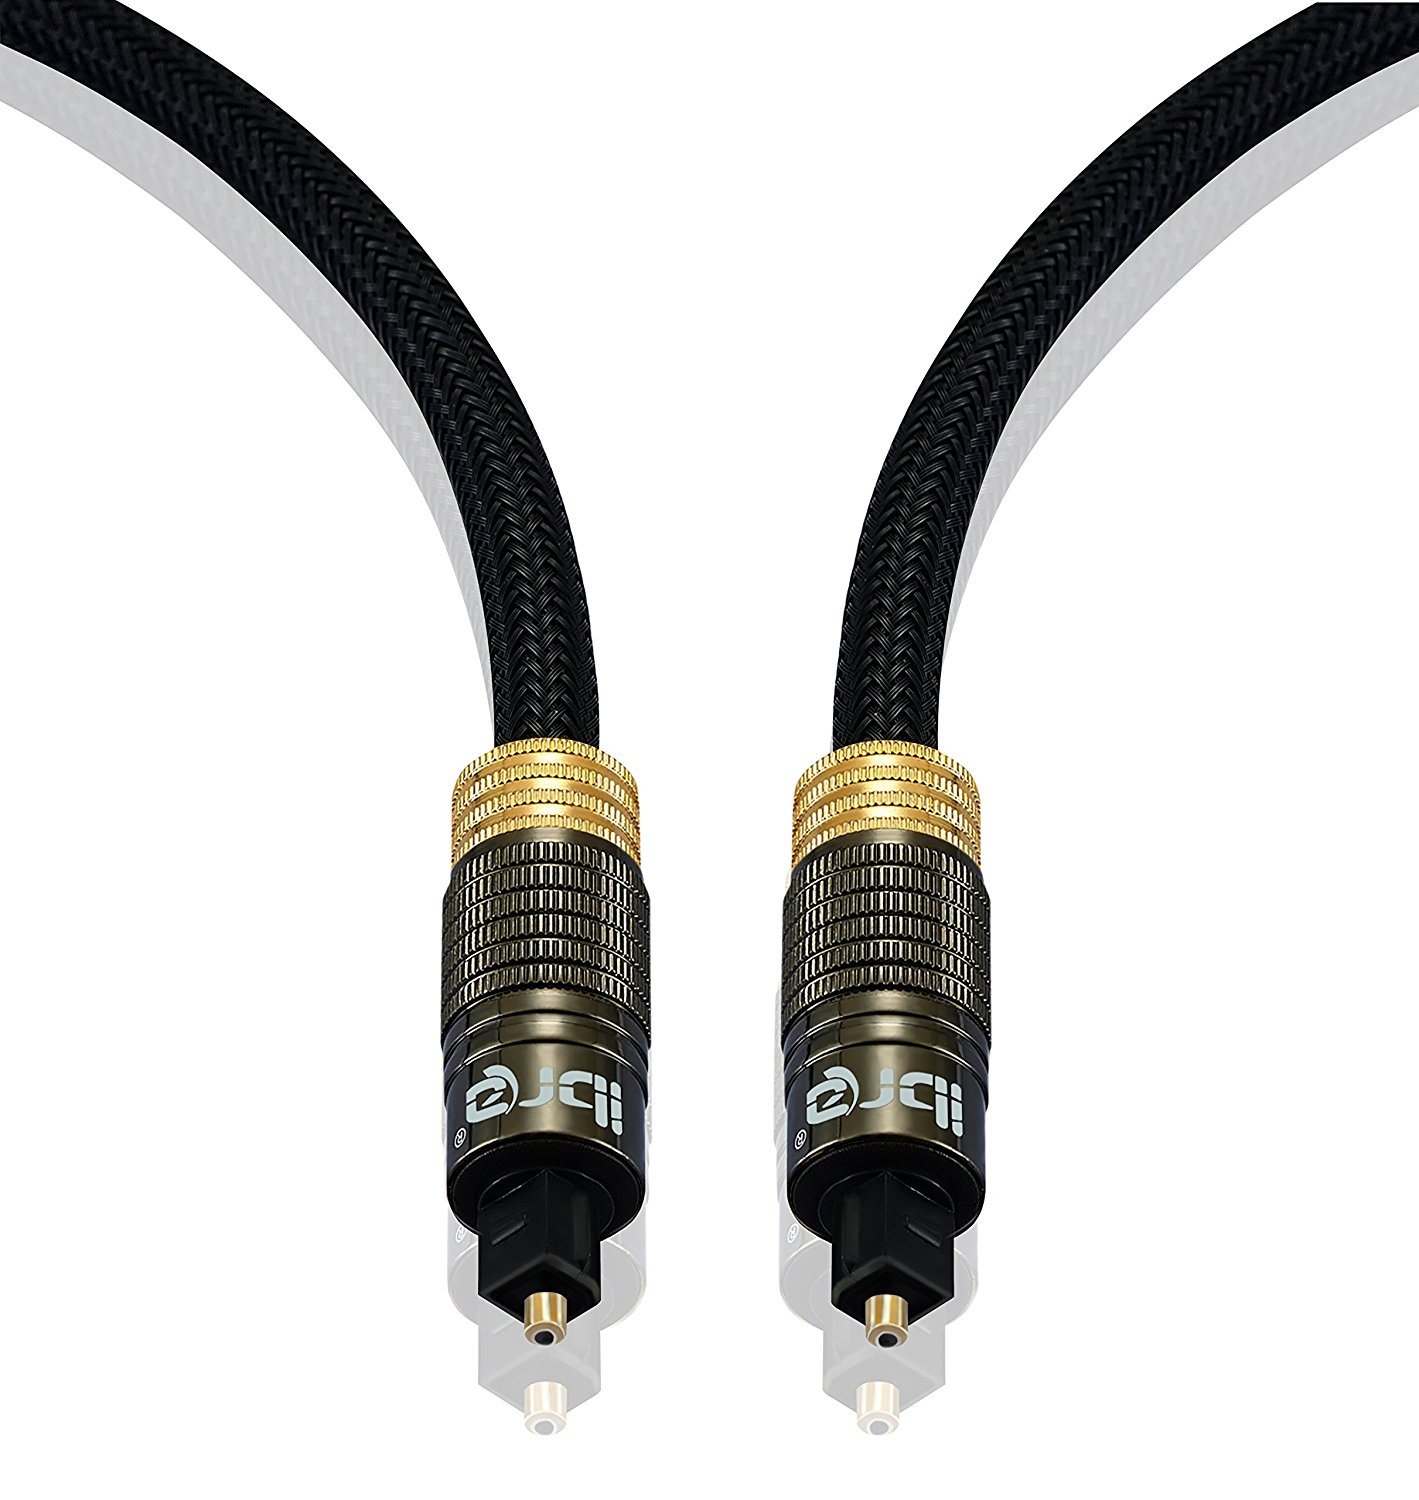 IBRA Muzil Gold 2M - Digital Optical Cable | Toslink / Audio Cable | Fibre Optic Cable | Suitable for PS3, Sky, Sky HD, LCD, LED, Plasma, Blu-ray, AV Amps